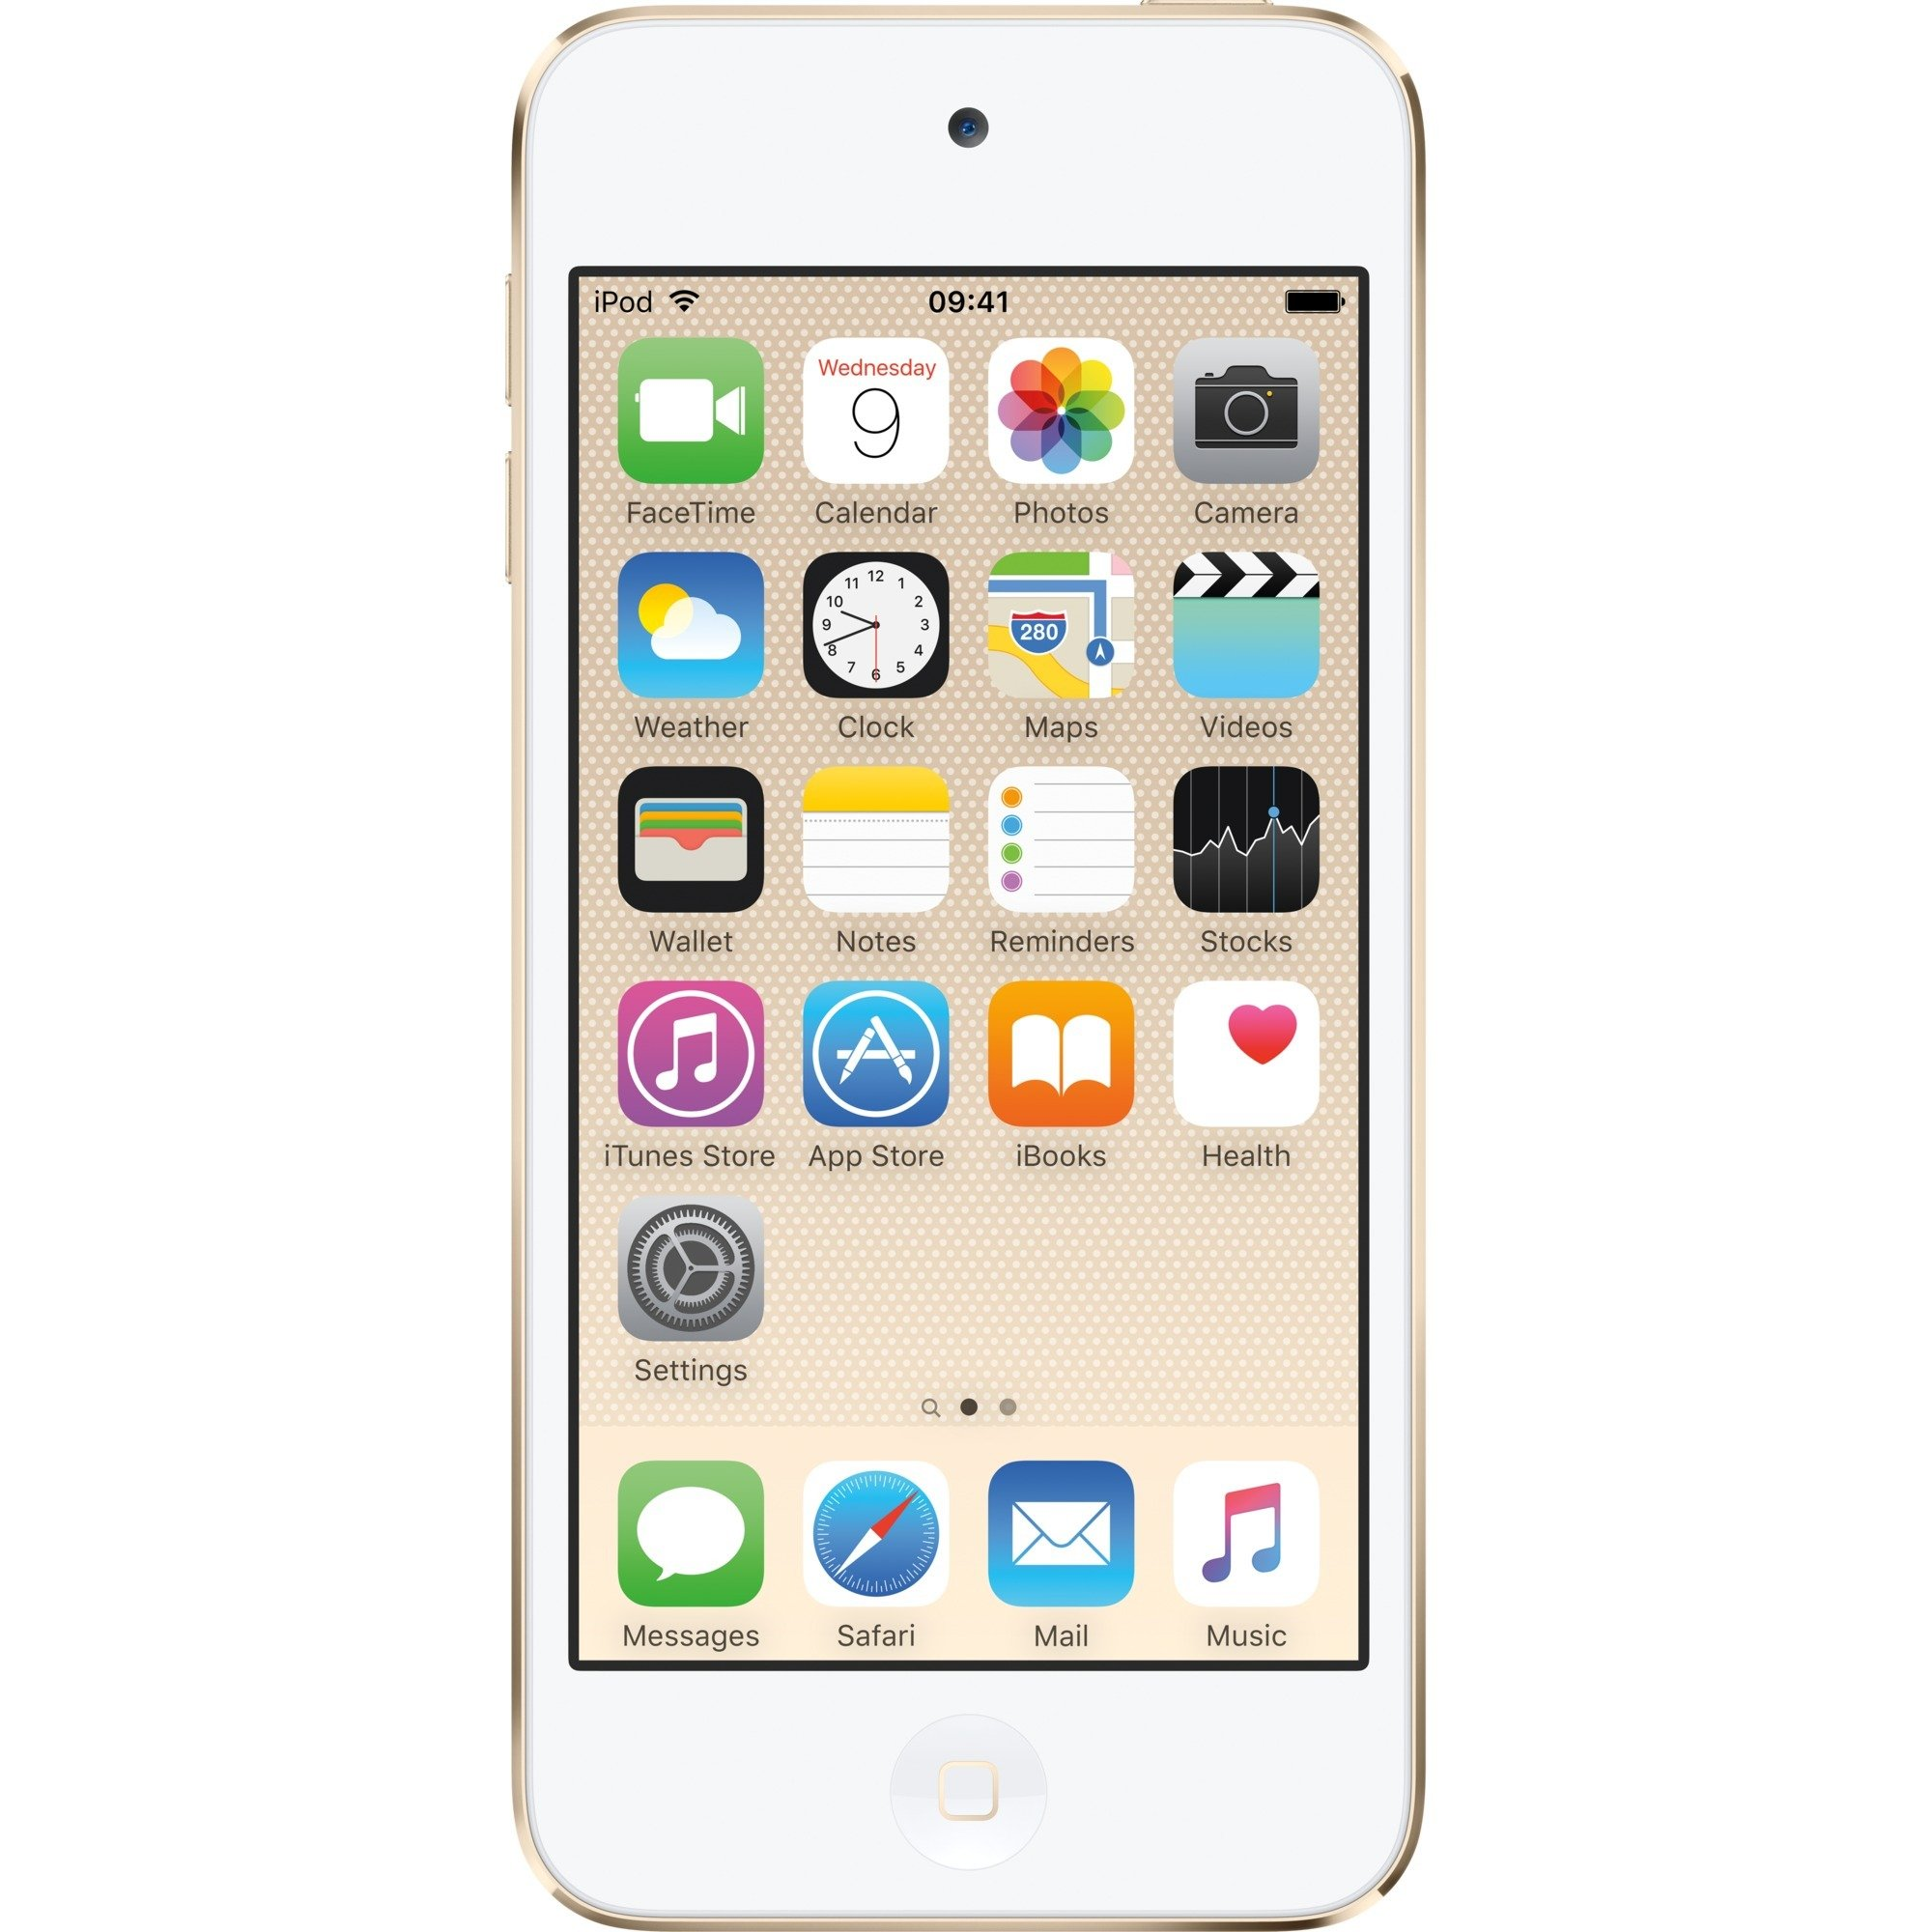 iPod touch 128GB Reproductor de MP4 128GB Oro, Reproductor MVP